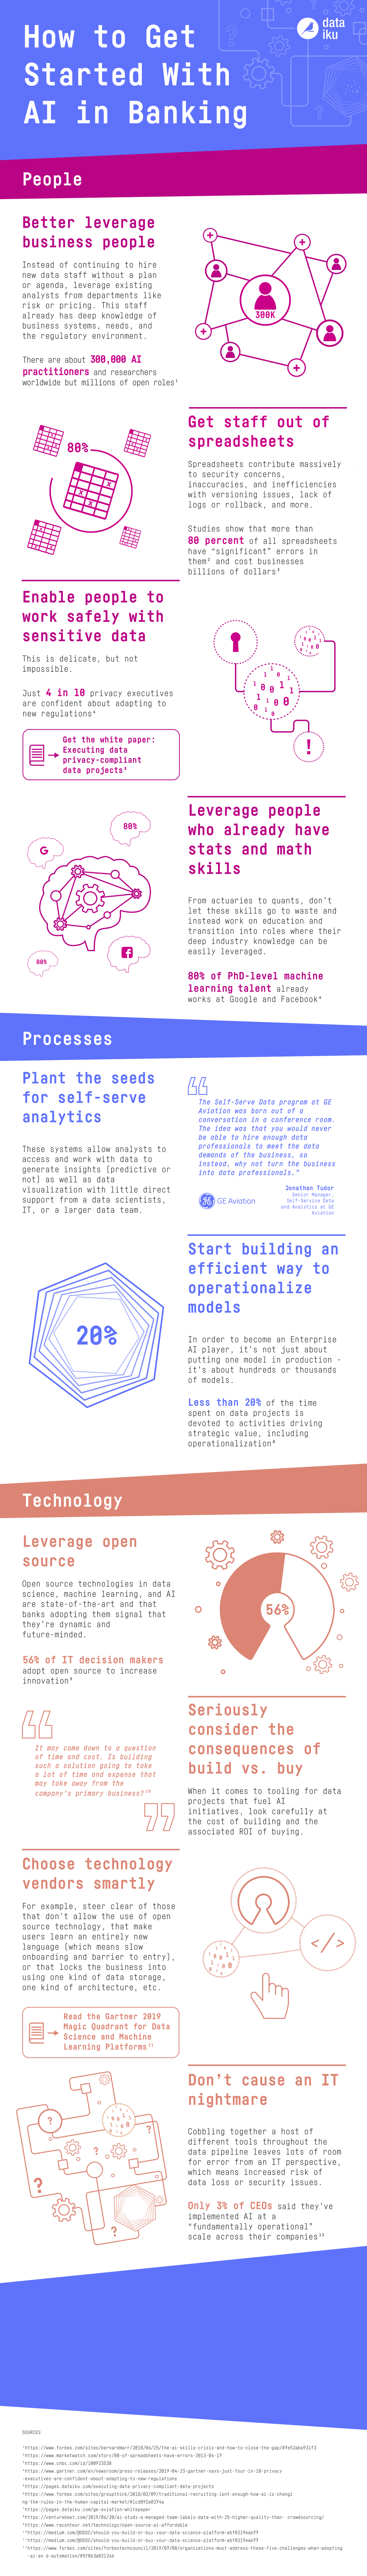 Get-Started-With-AI-Banking-Infographic-1